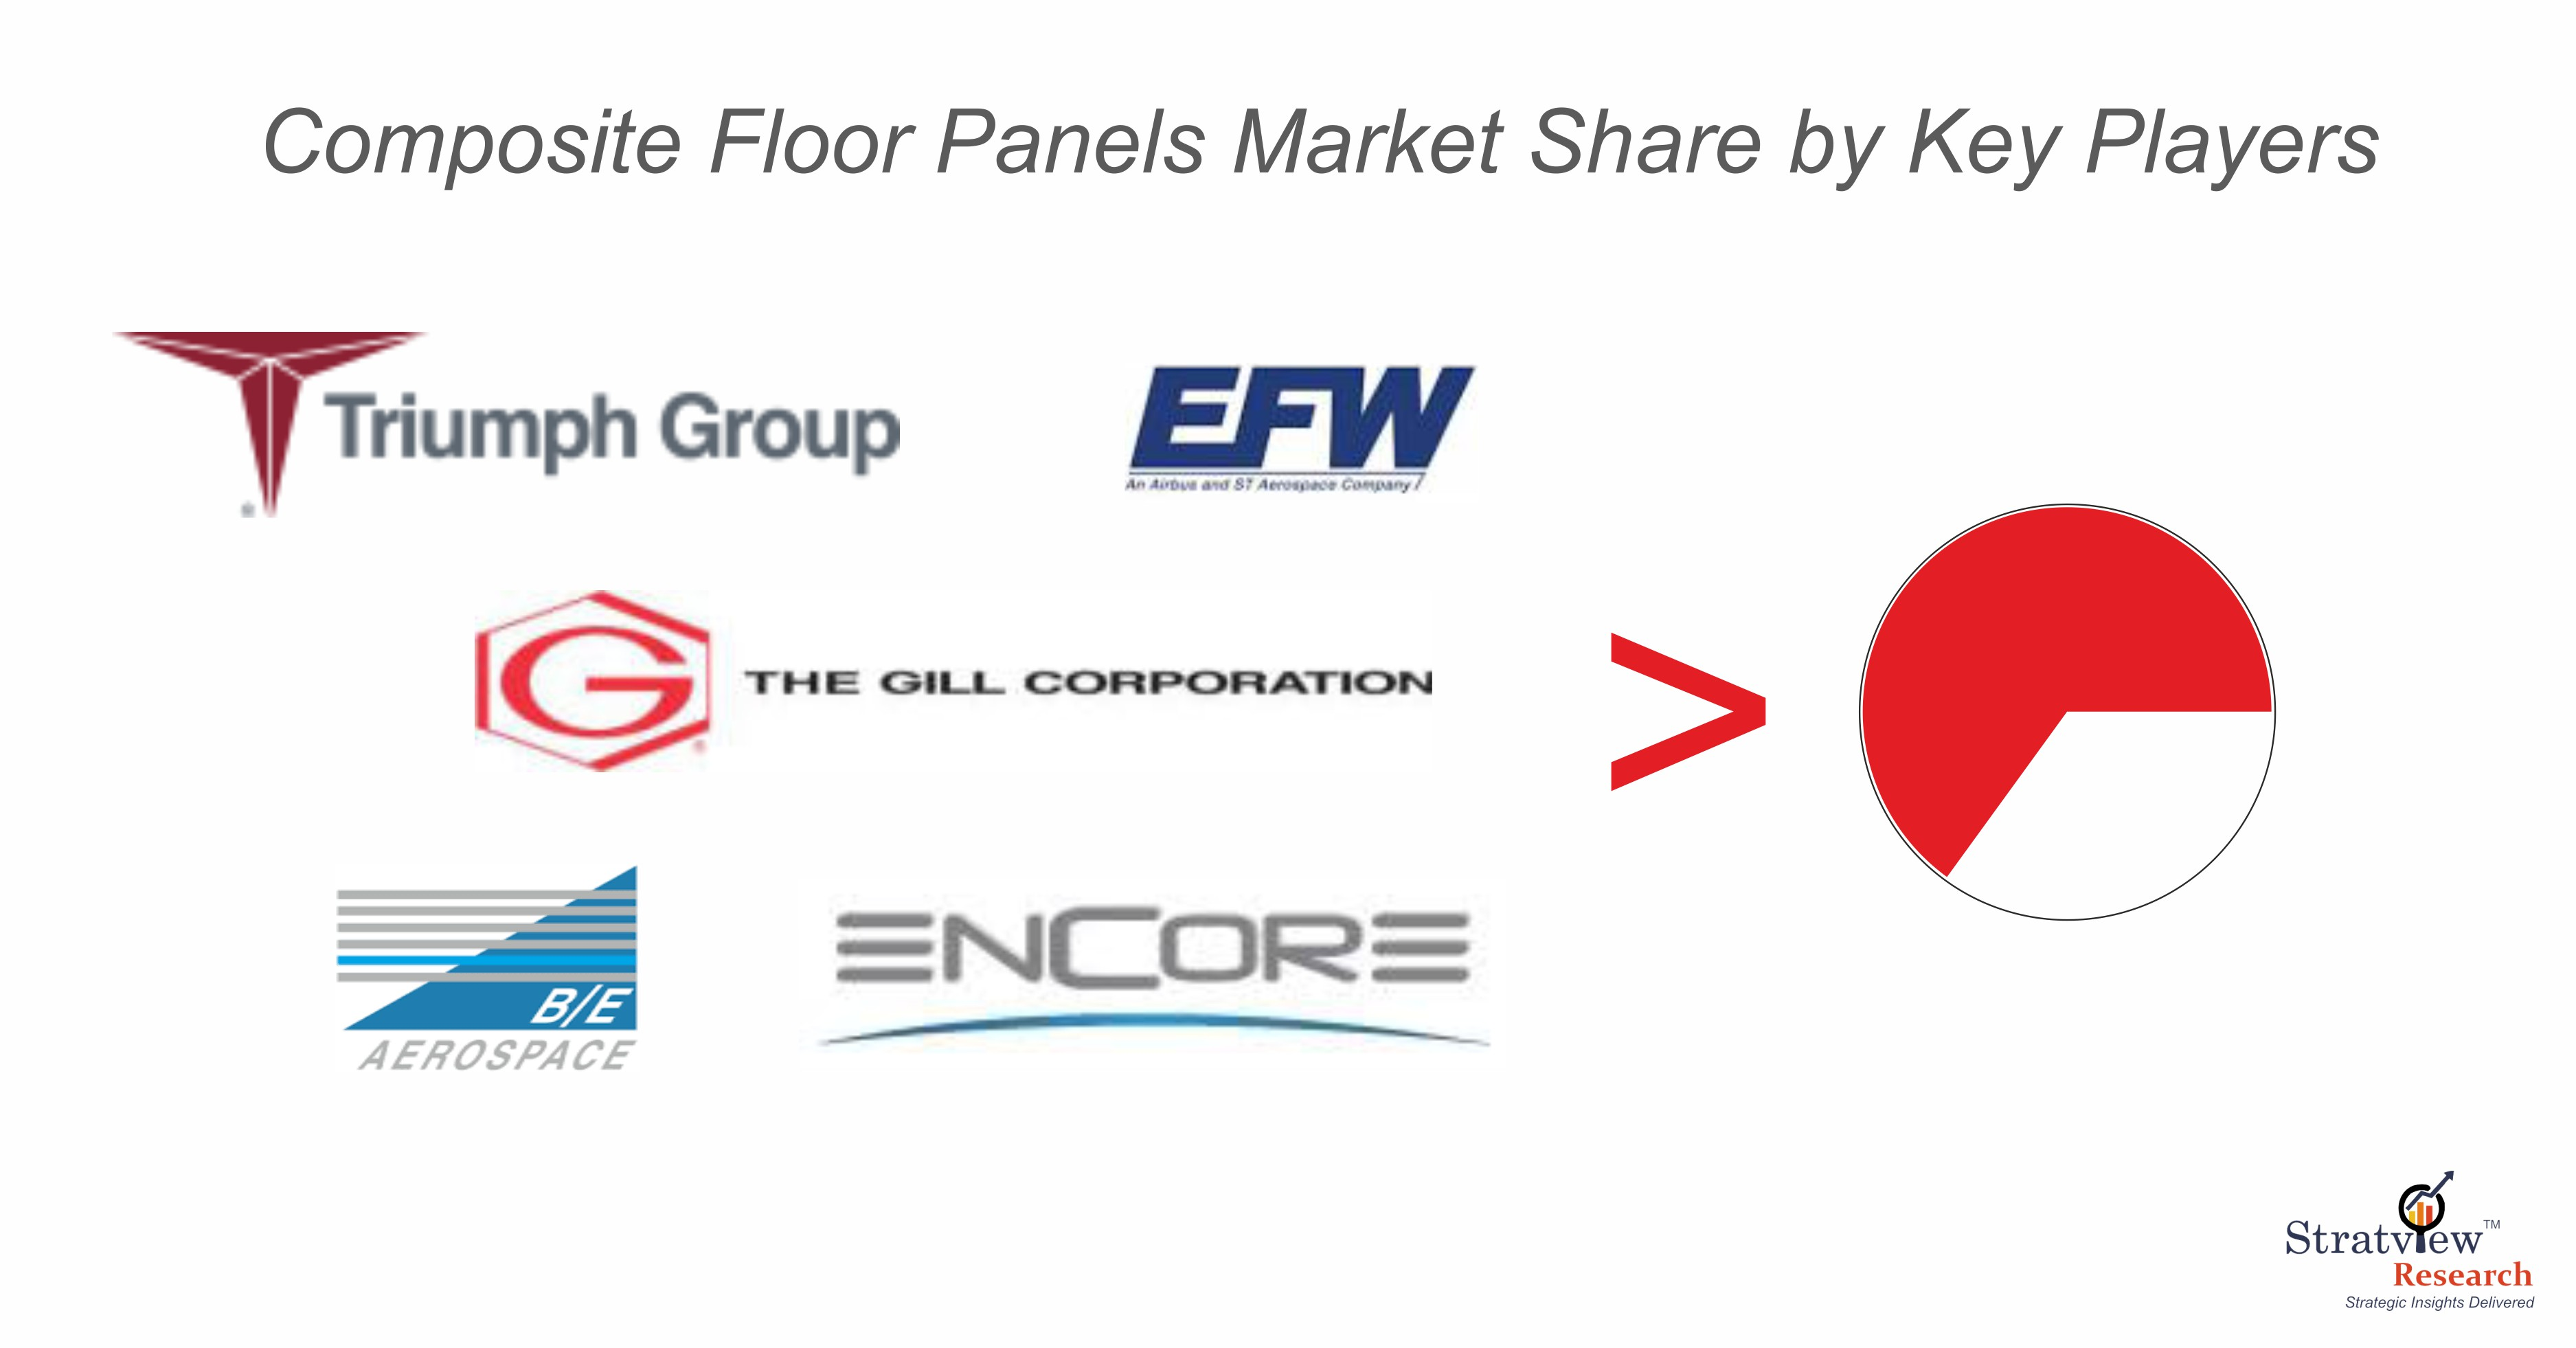 Composite Floor Panel Market Share Analysis